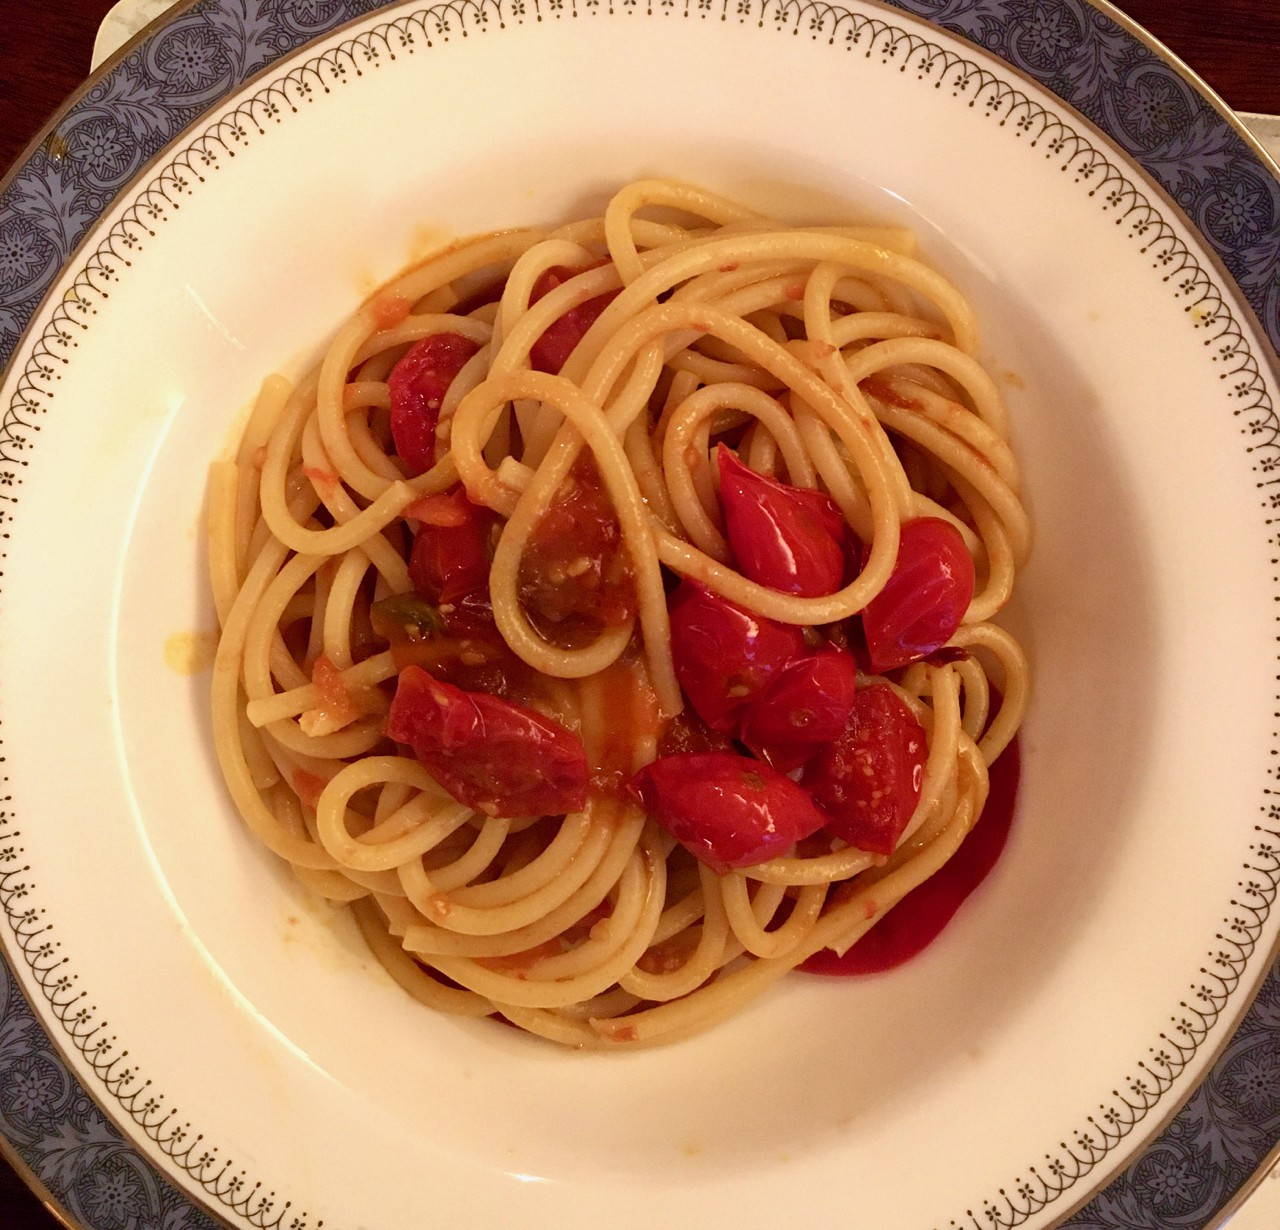 A bowl of pasta with fresh and cooked tomatoes.